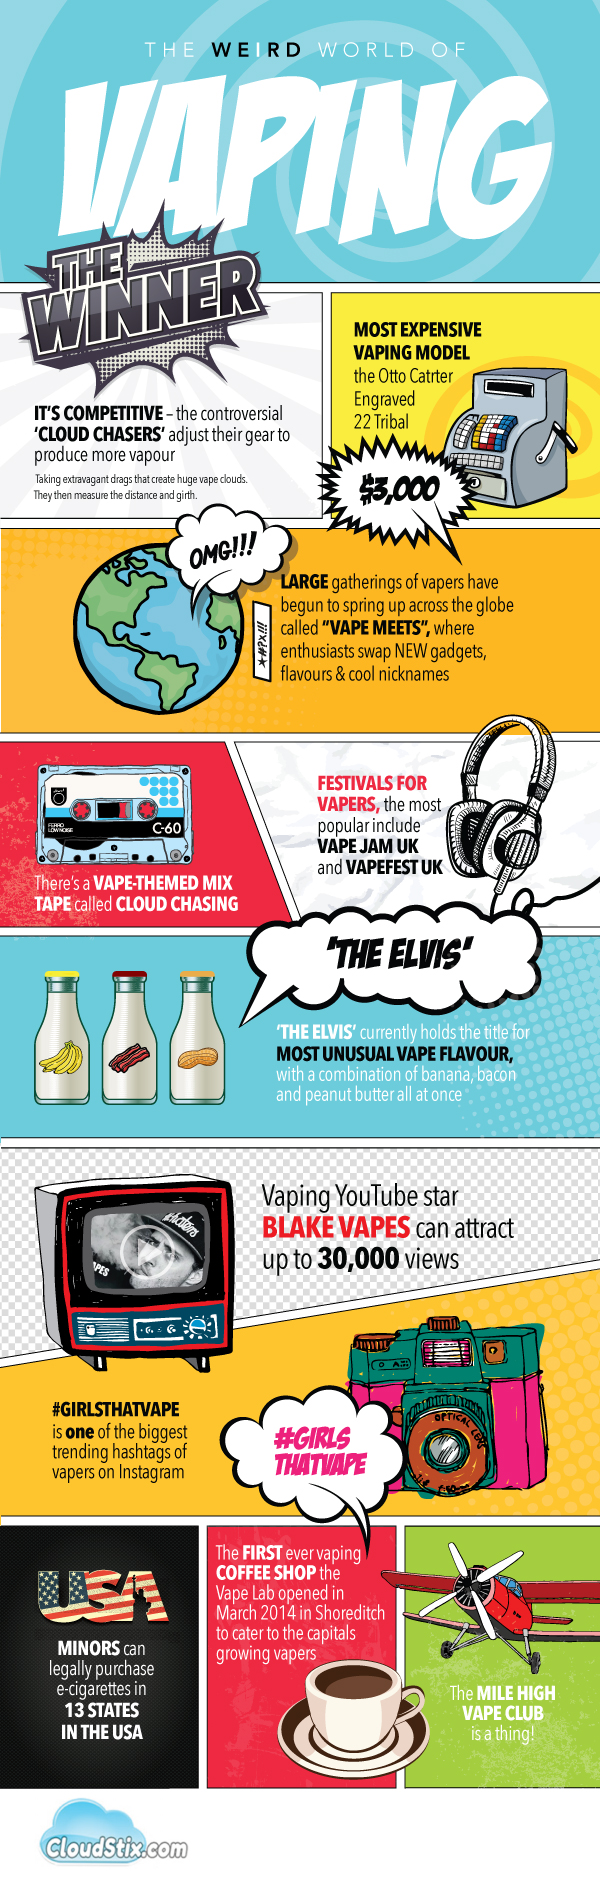 The vaping scene is booming